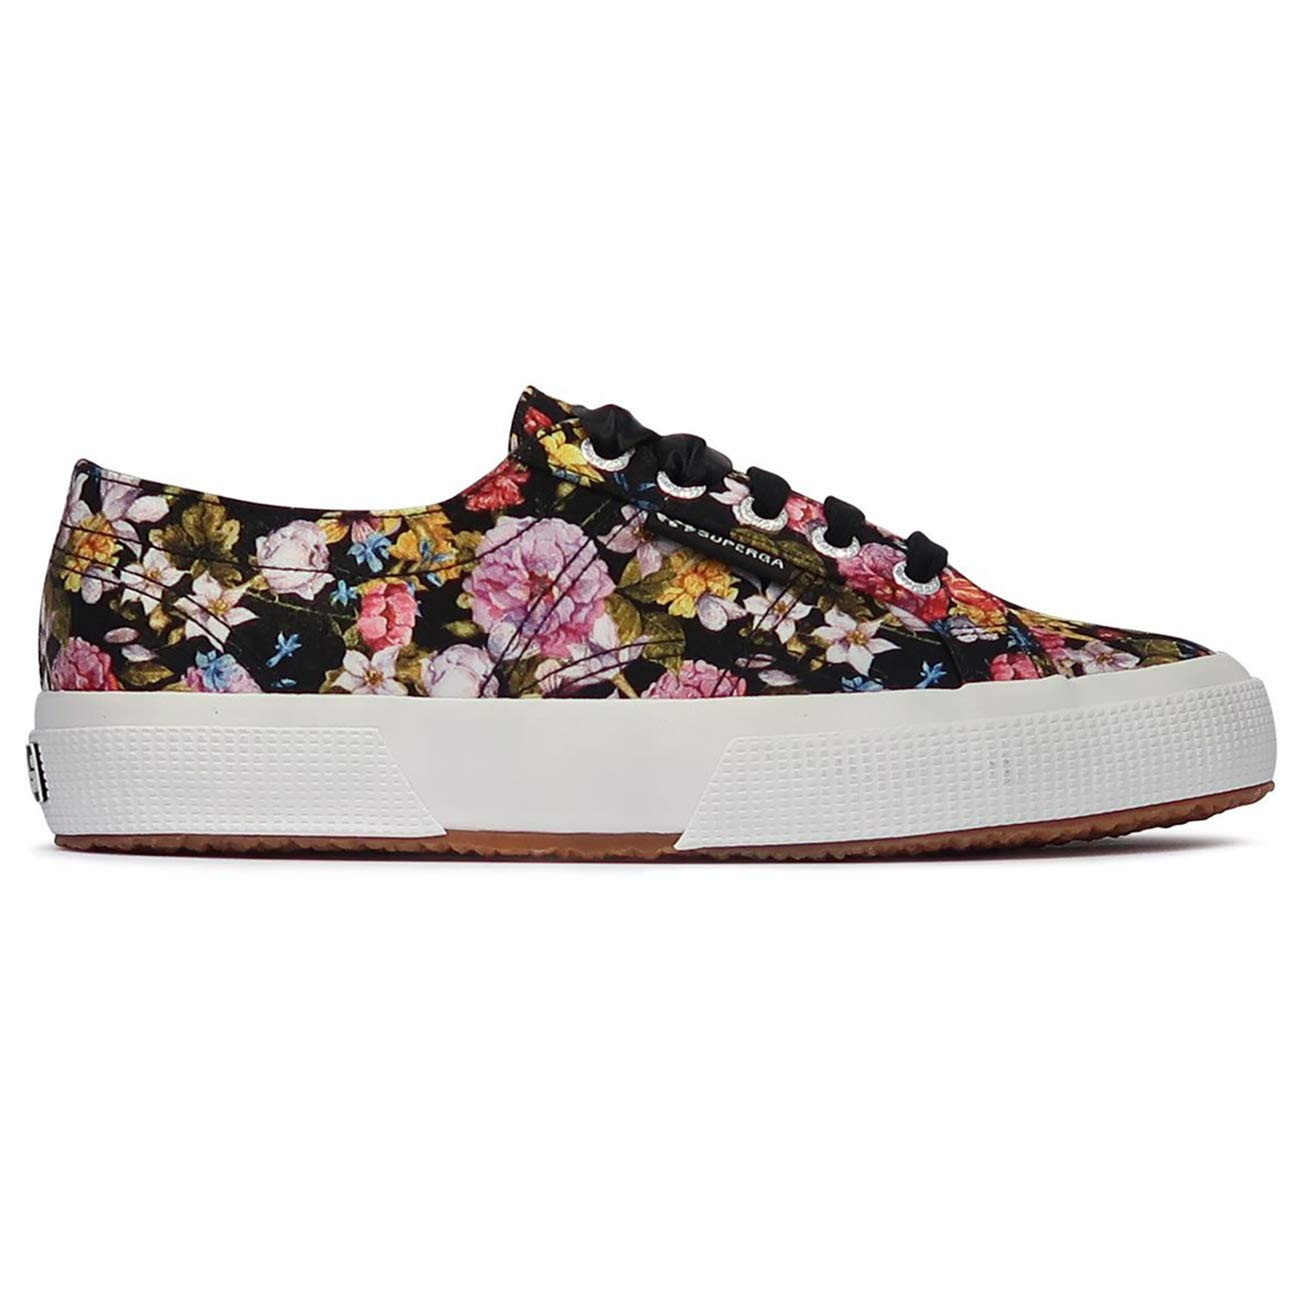 7a19f5850 Superga Womens 2750 Flowery Satin Closed Toe Low Top Lace Up Trainers:  Amazon.co.uk: Shoes & Bags